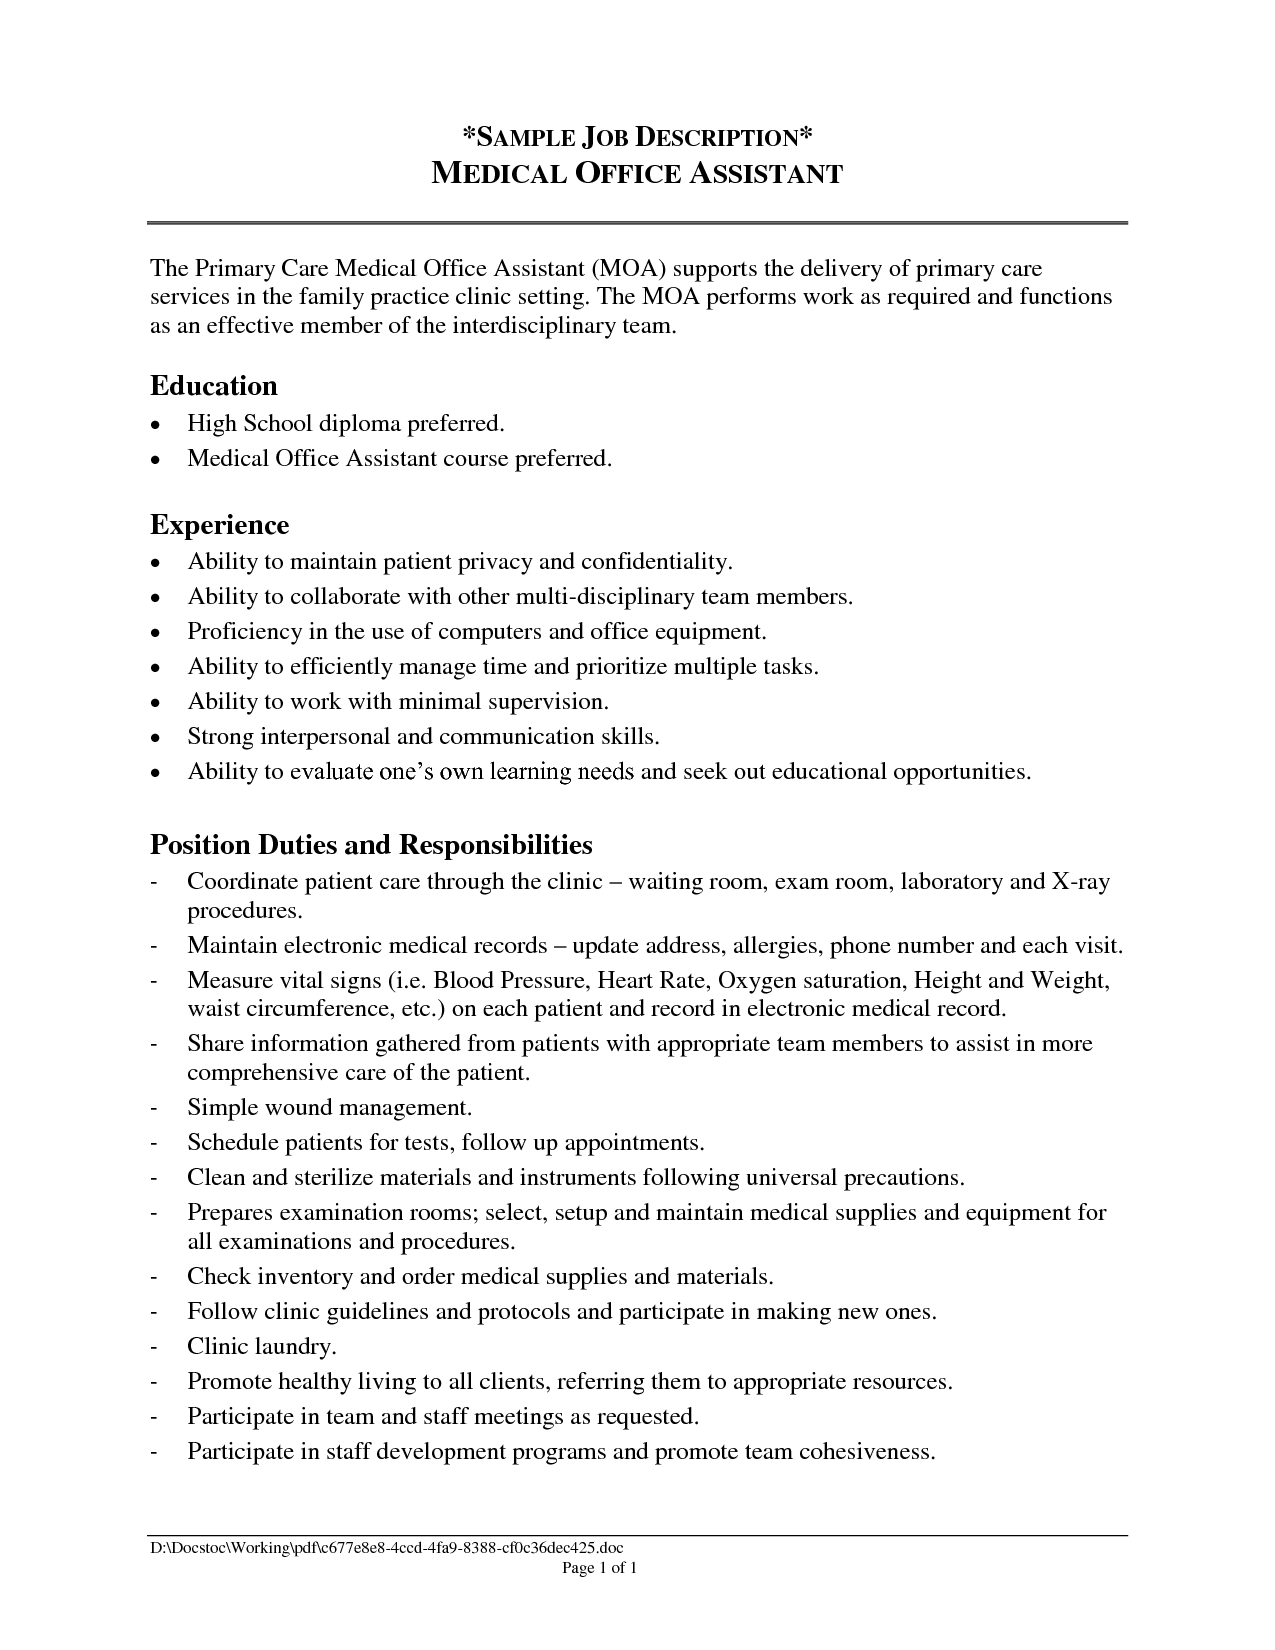 2016 Medical Assistant Duties Resume - SampleBusinessResume.com ...